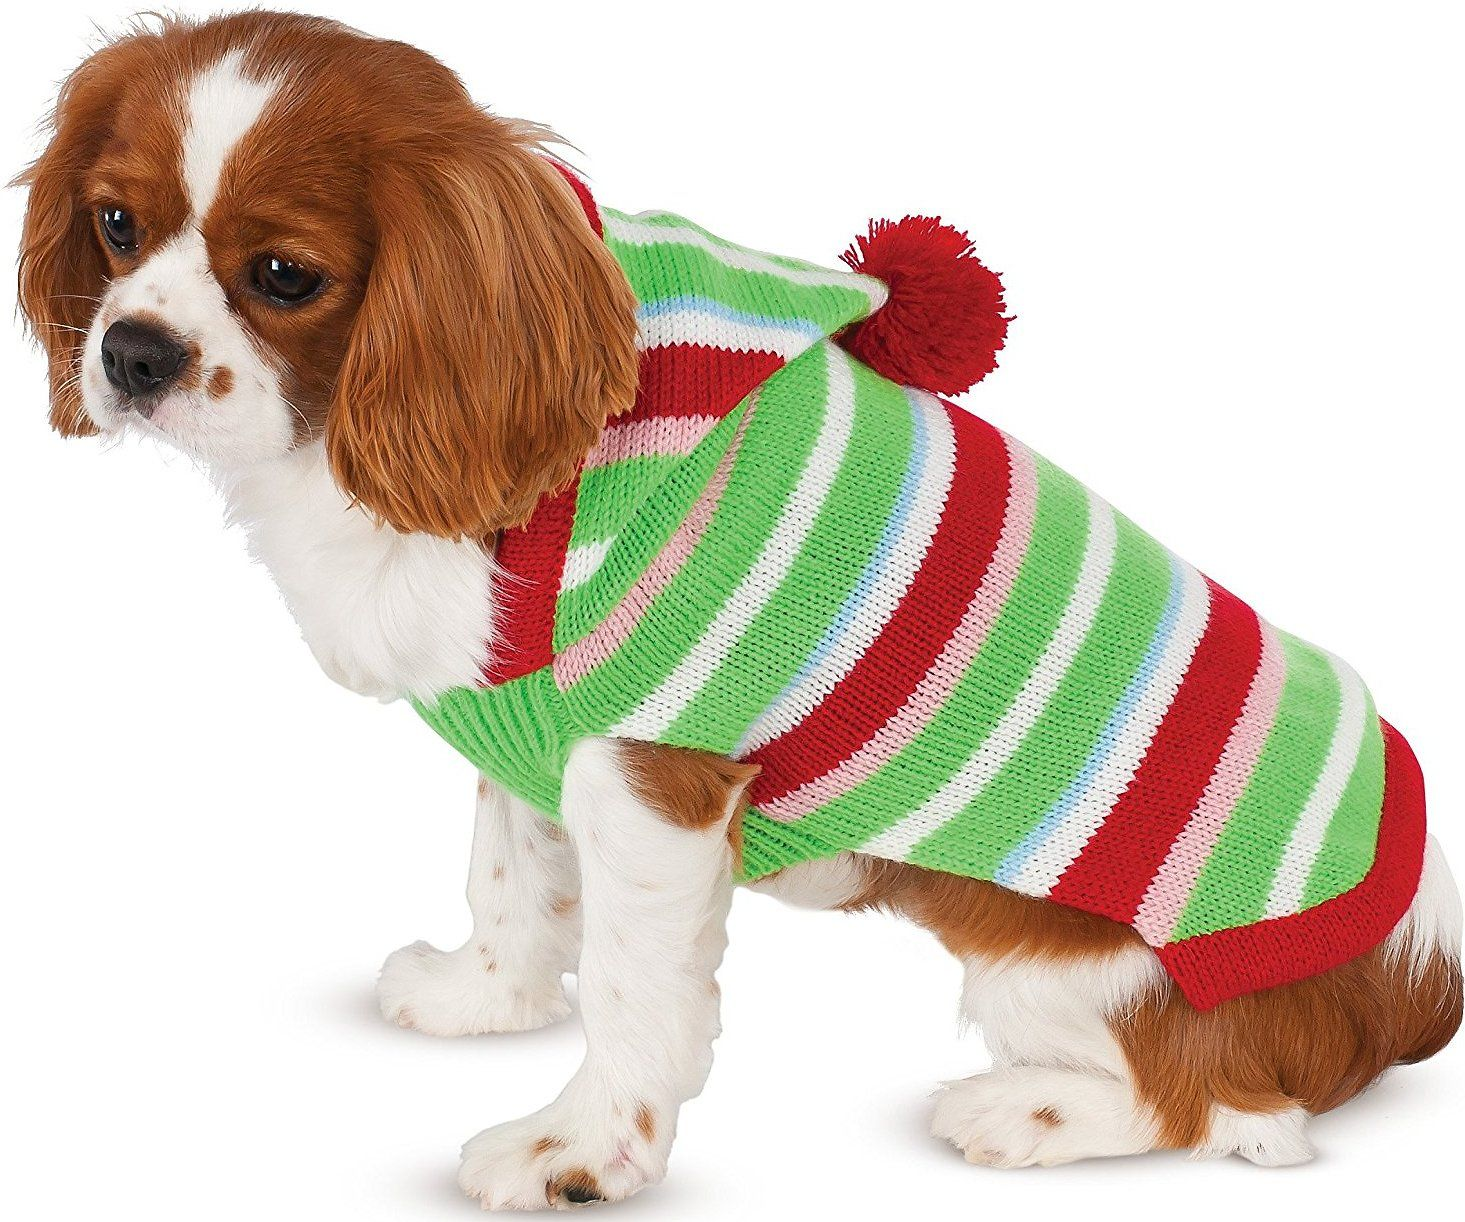 Include your pup in the festivities this holiday season with Rubieu0027s Costume Company Candy Striped Dog  sc 1 st  Pinterest & Include your pup in the festivities this holiday season with Rubieu0027s ...